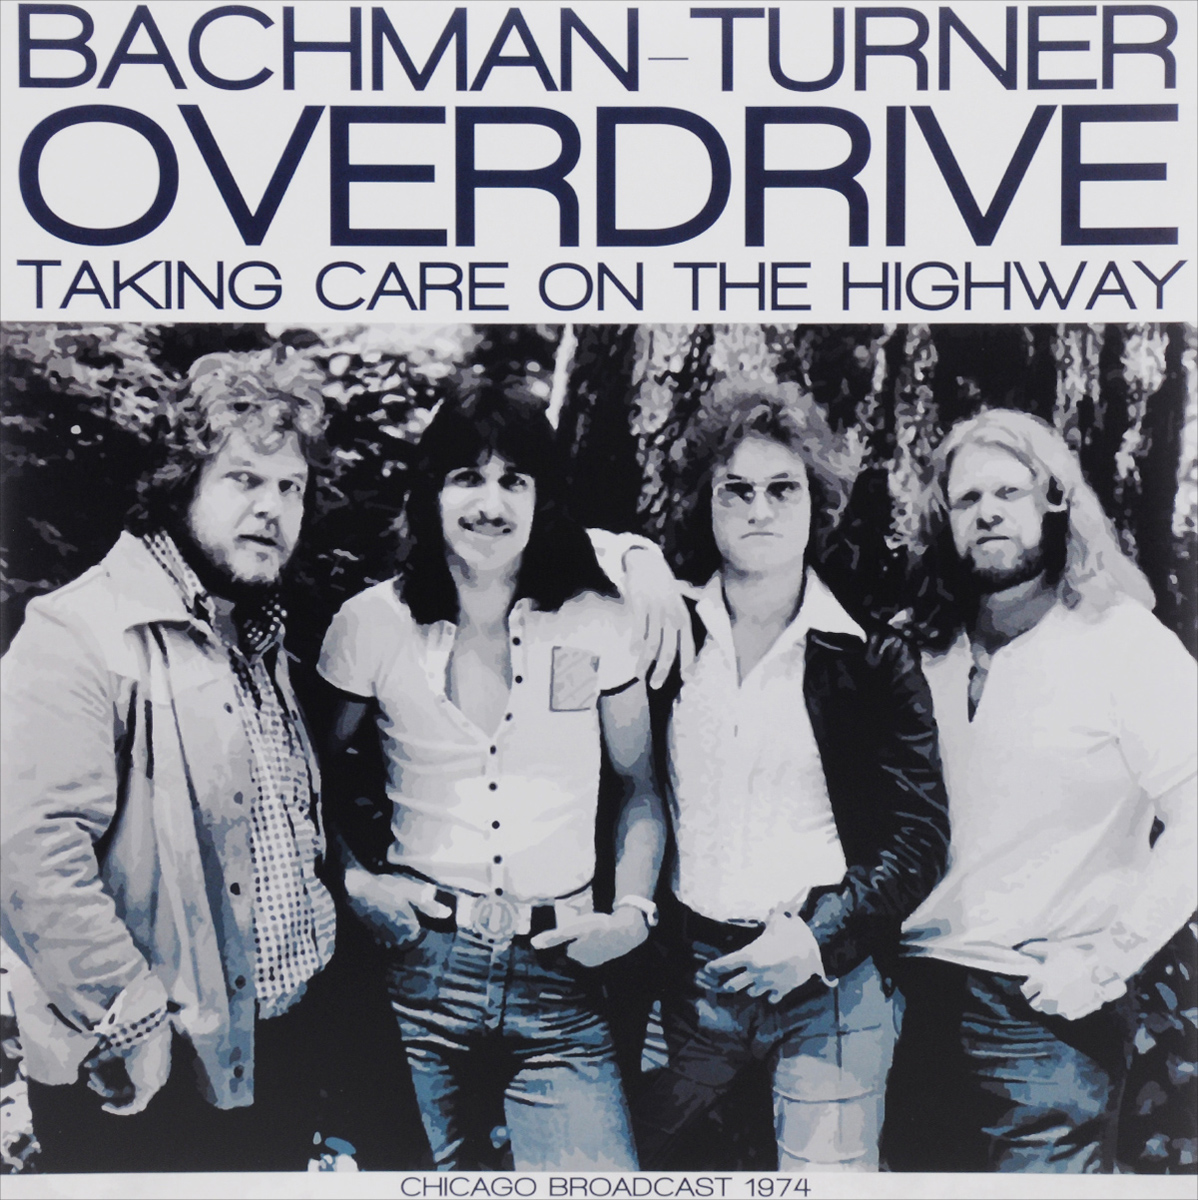 Bachman-Turner Overdrive Bachman-Turner Overdrive. Taking Care On The Highway (2 LP) on the bright side